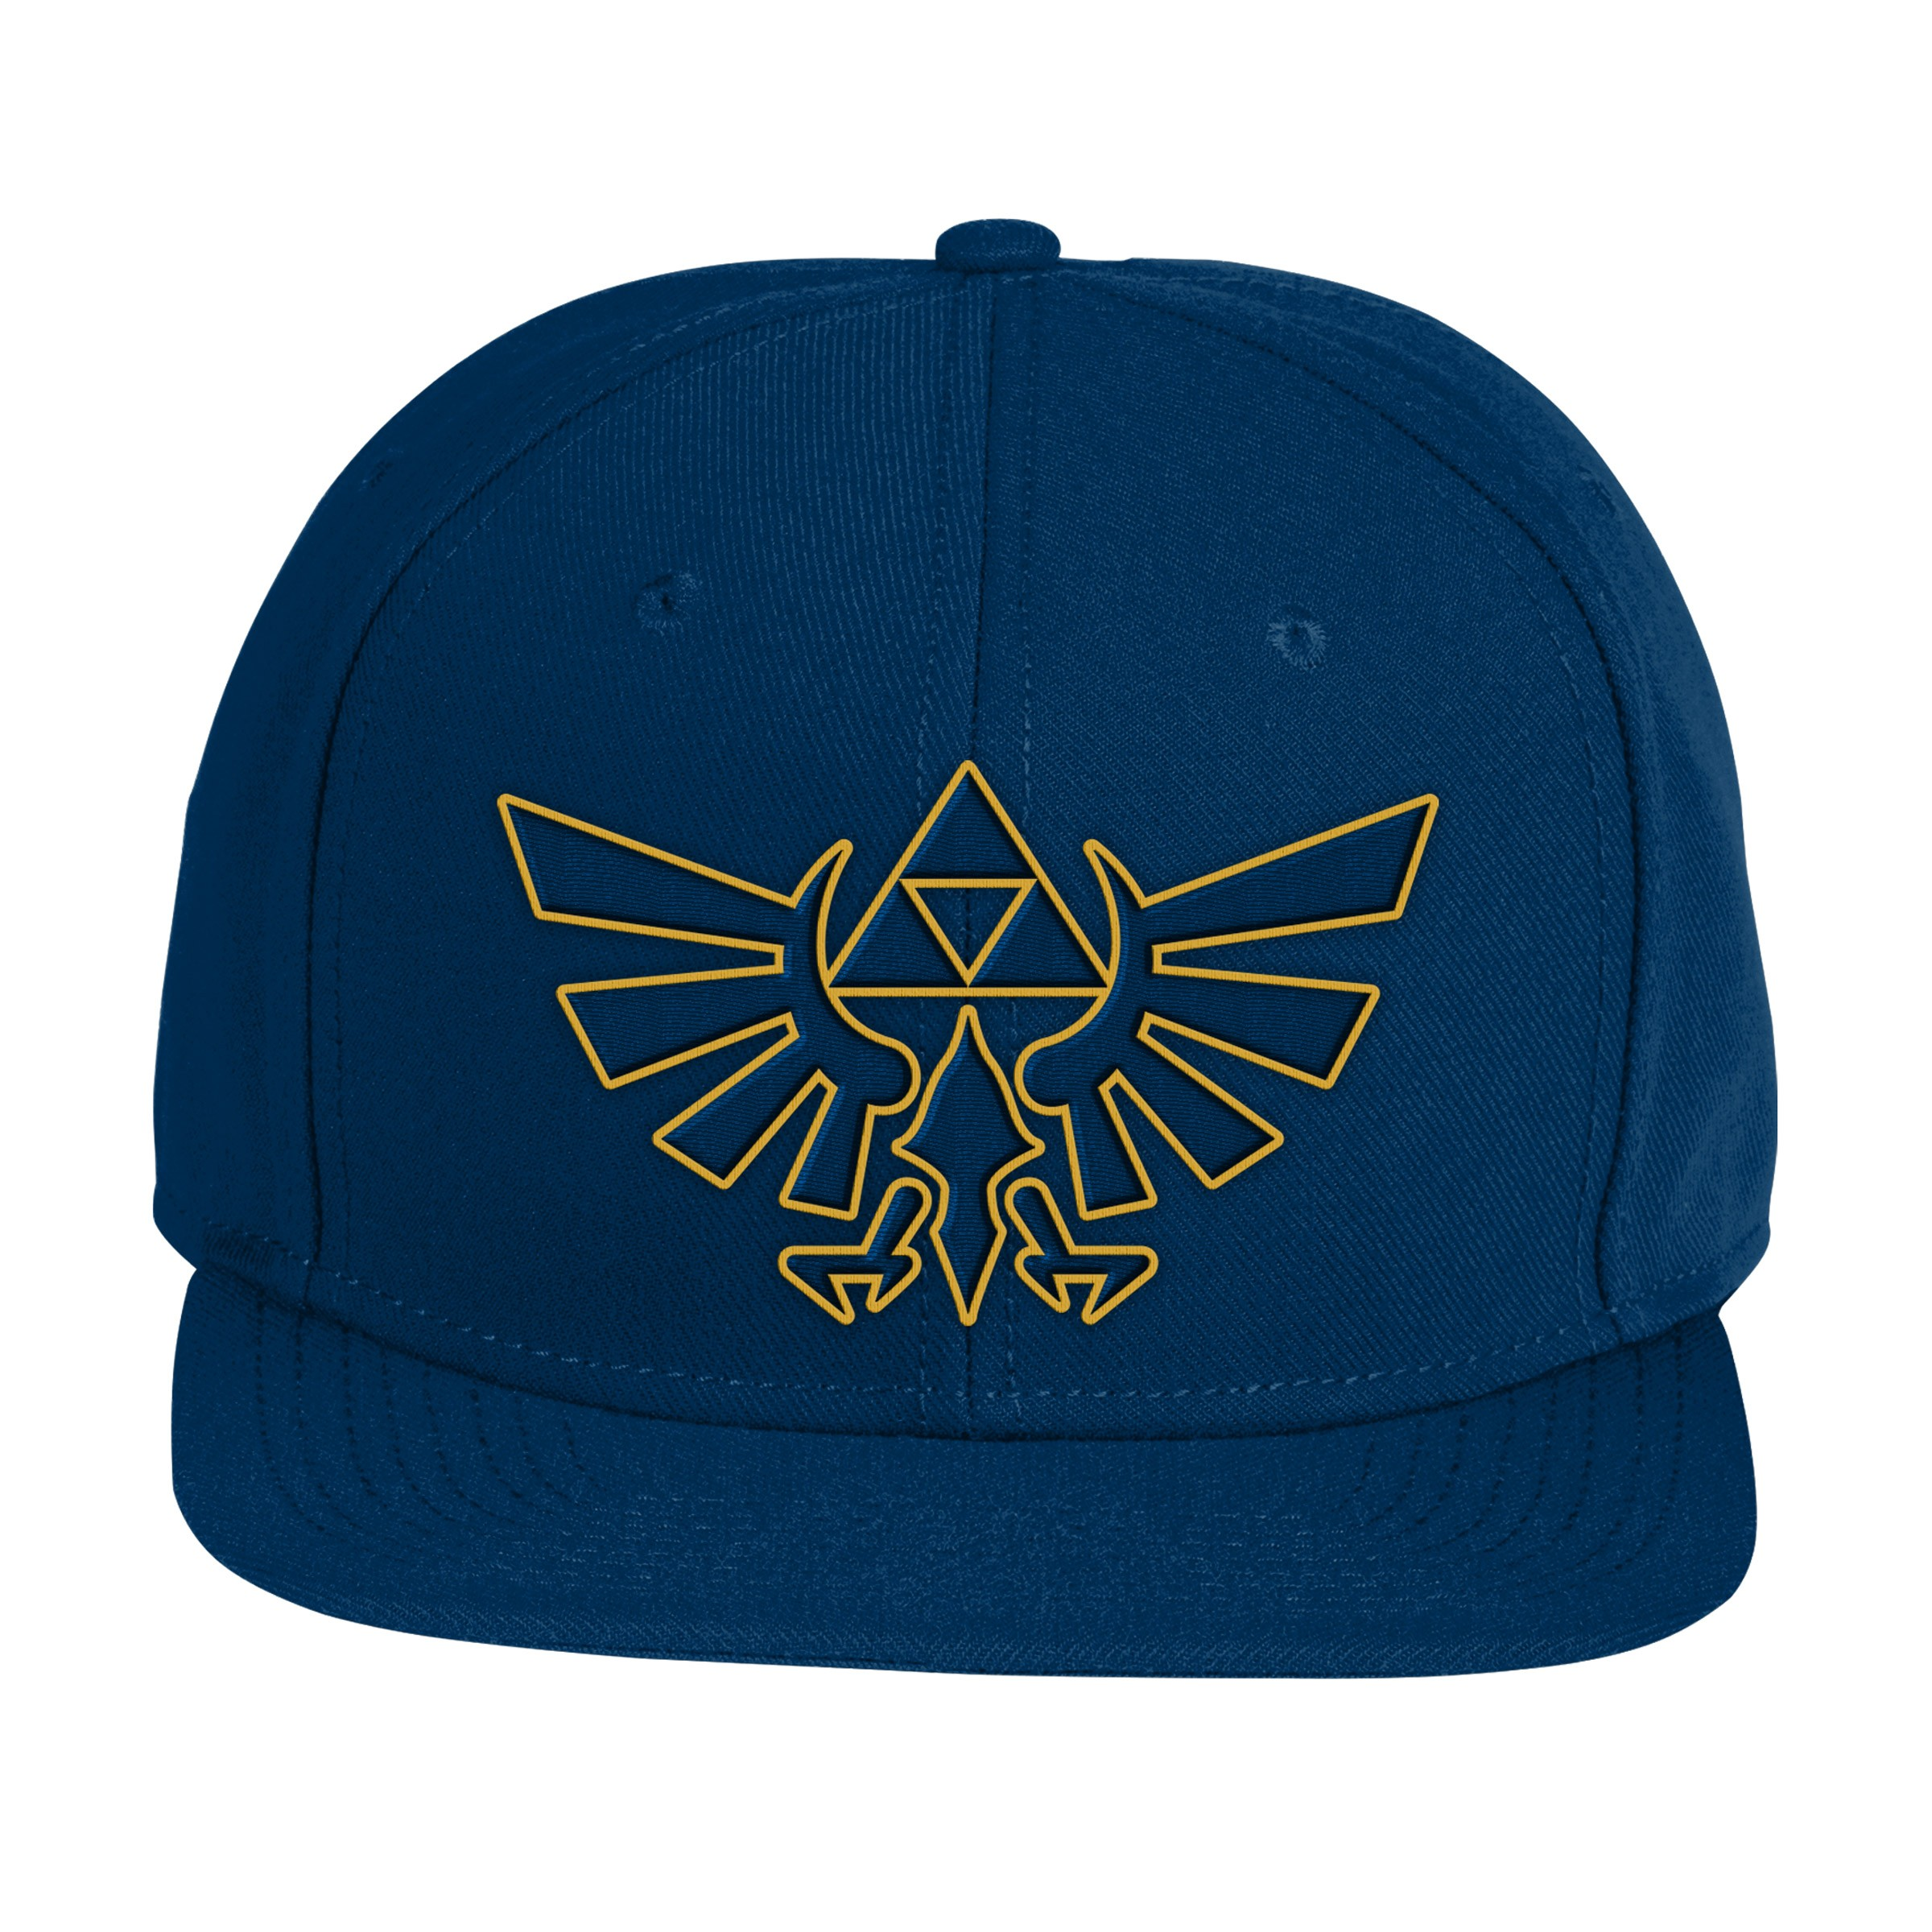 "The Legend of Zelda: Breath of the Wild ""Link"" Flat Bill Hat - Officially Licensed by Nintendo"